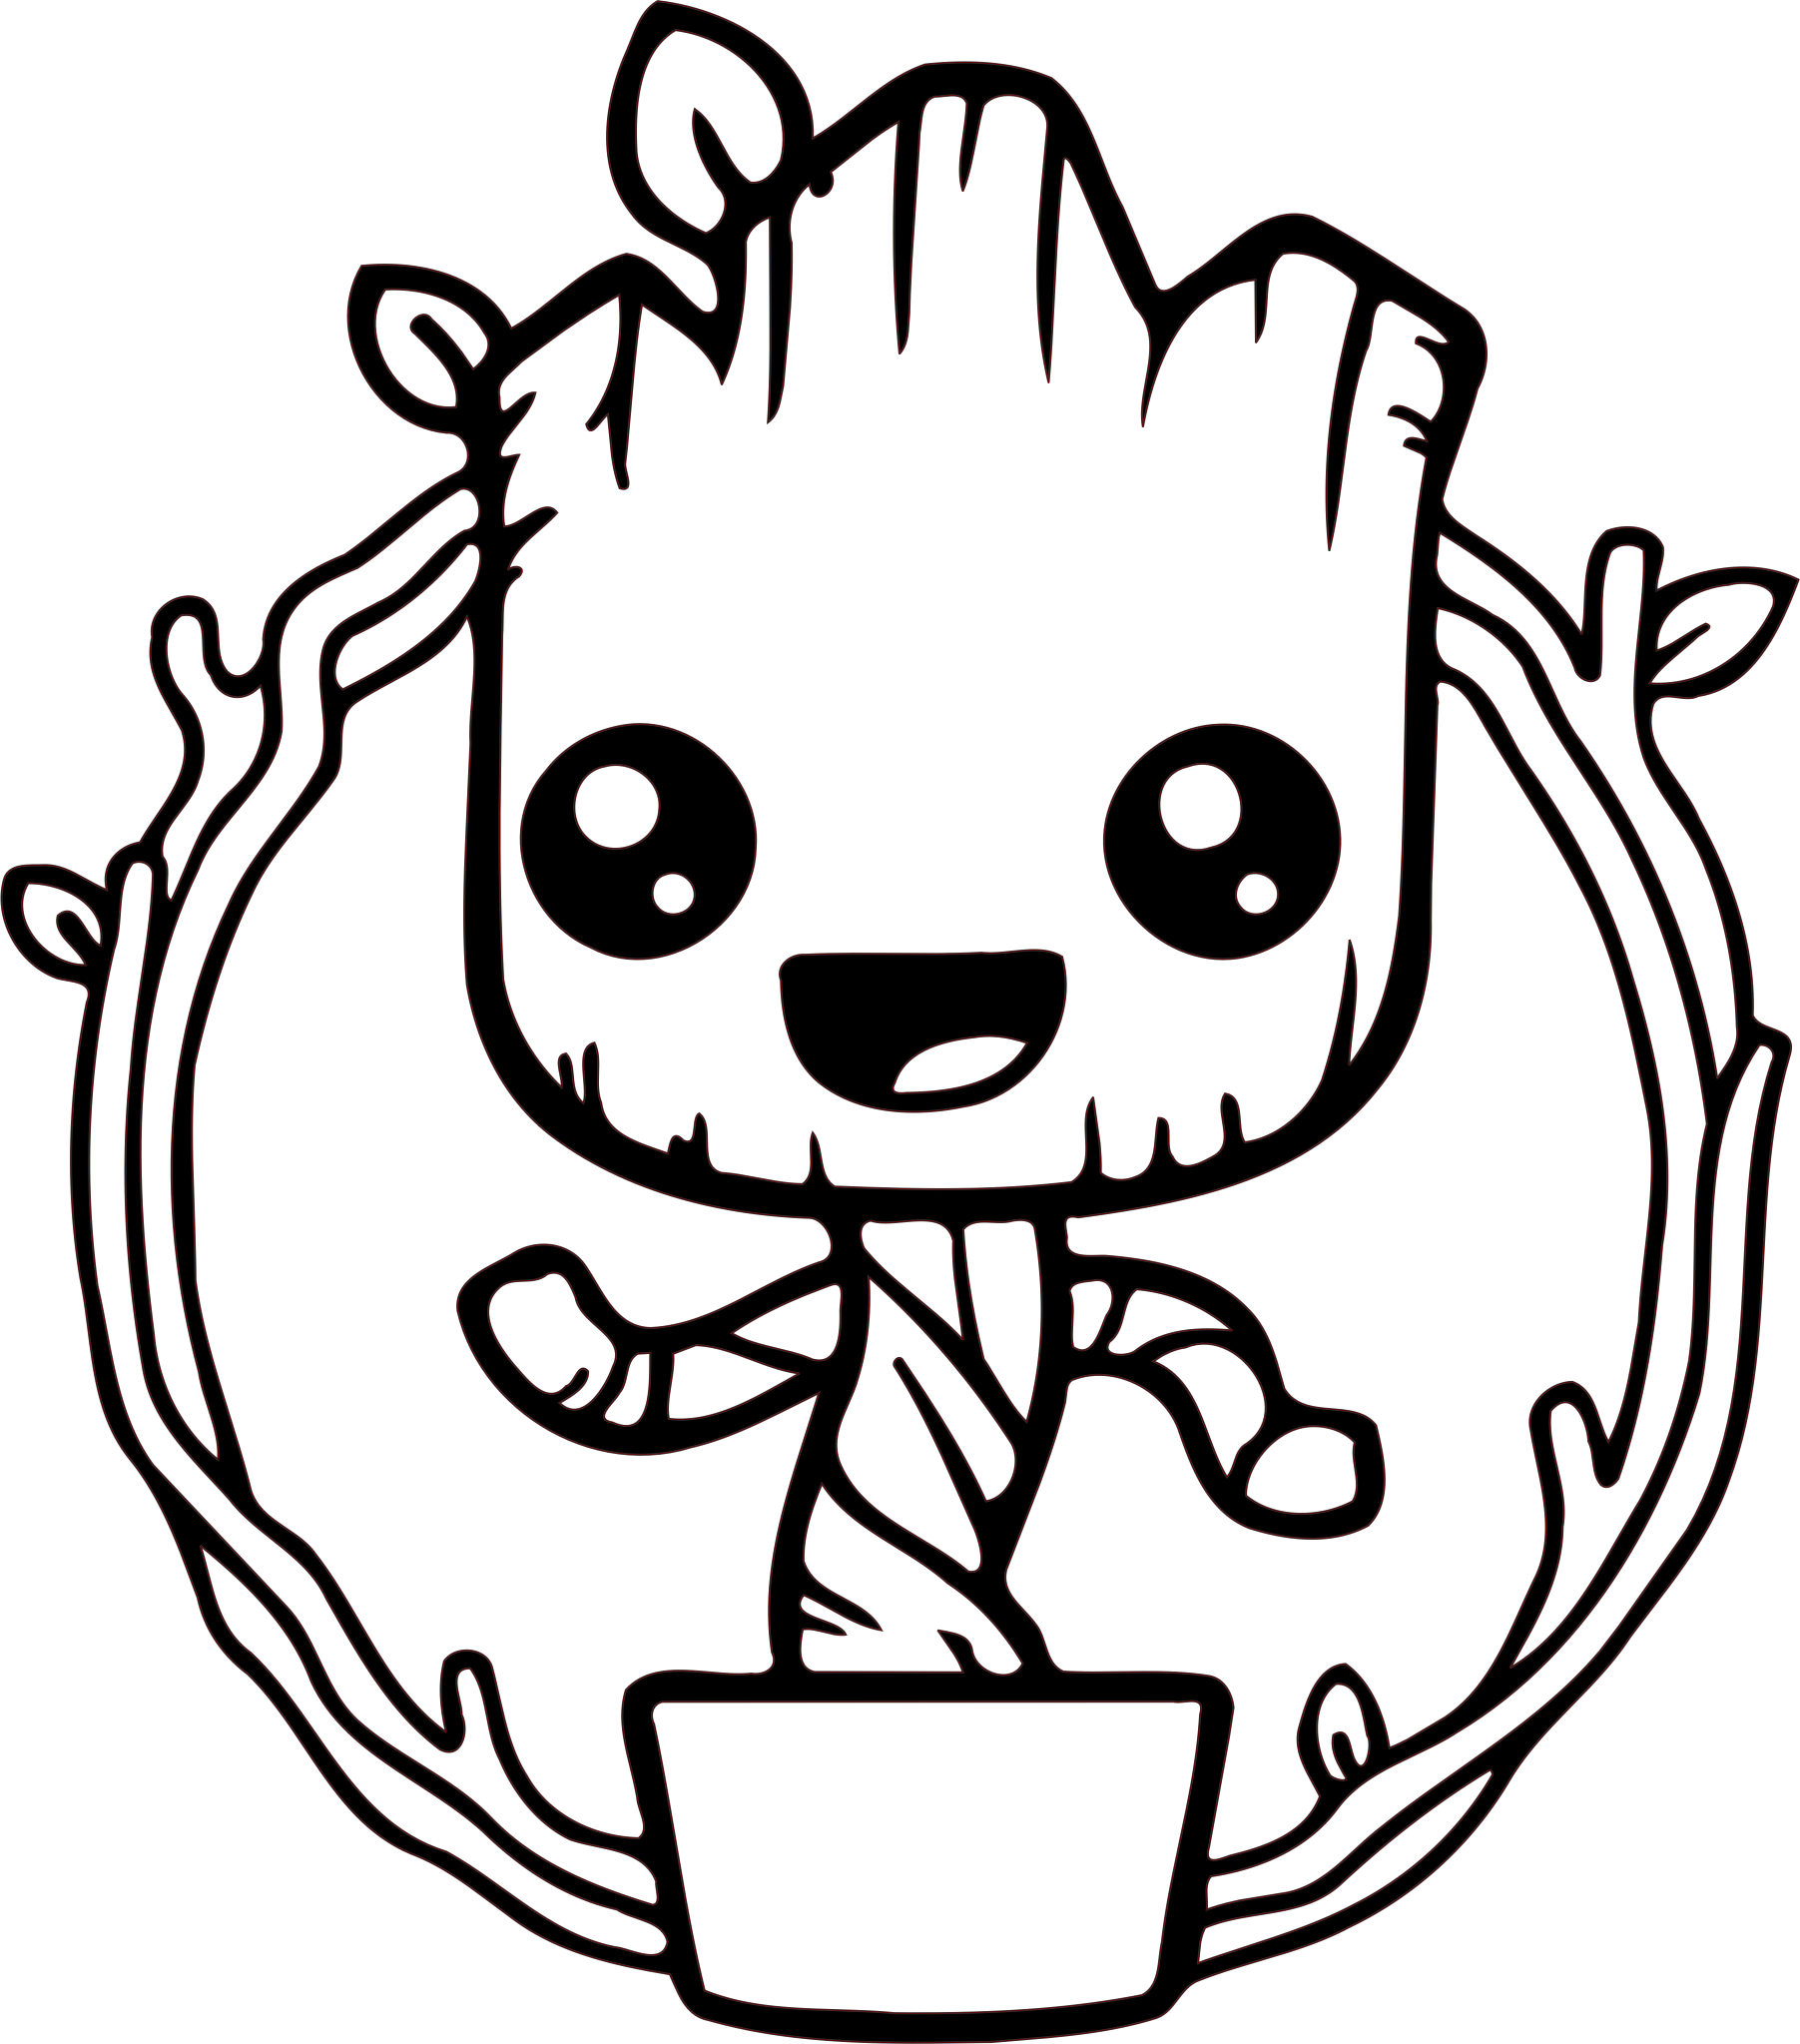 70 Groot free clipart.